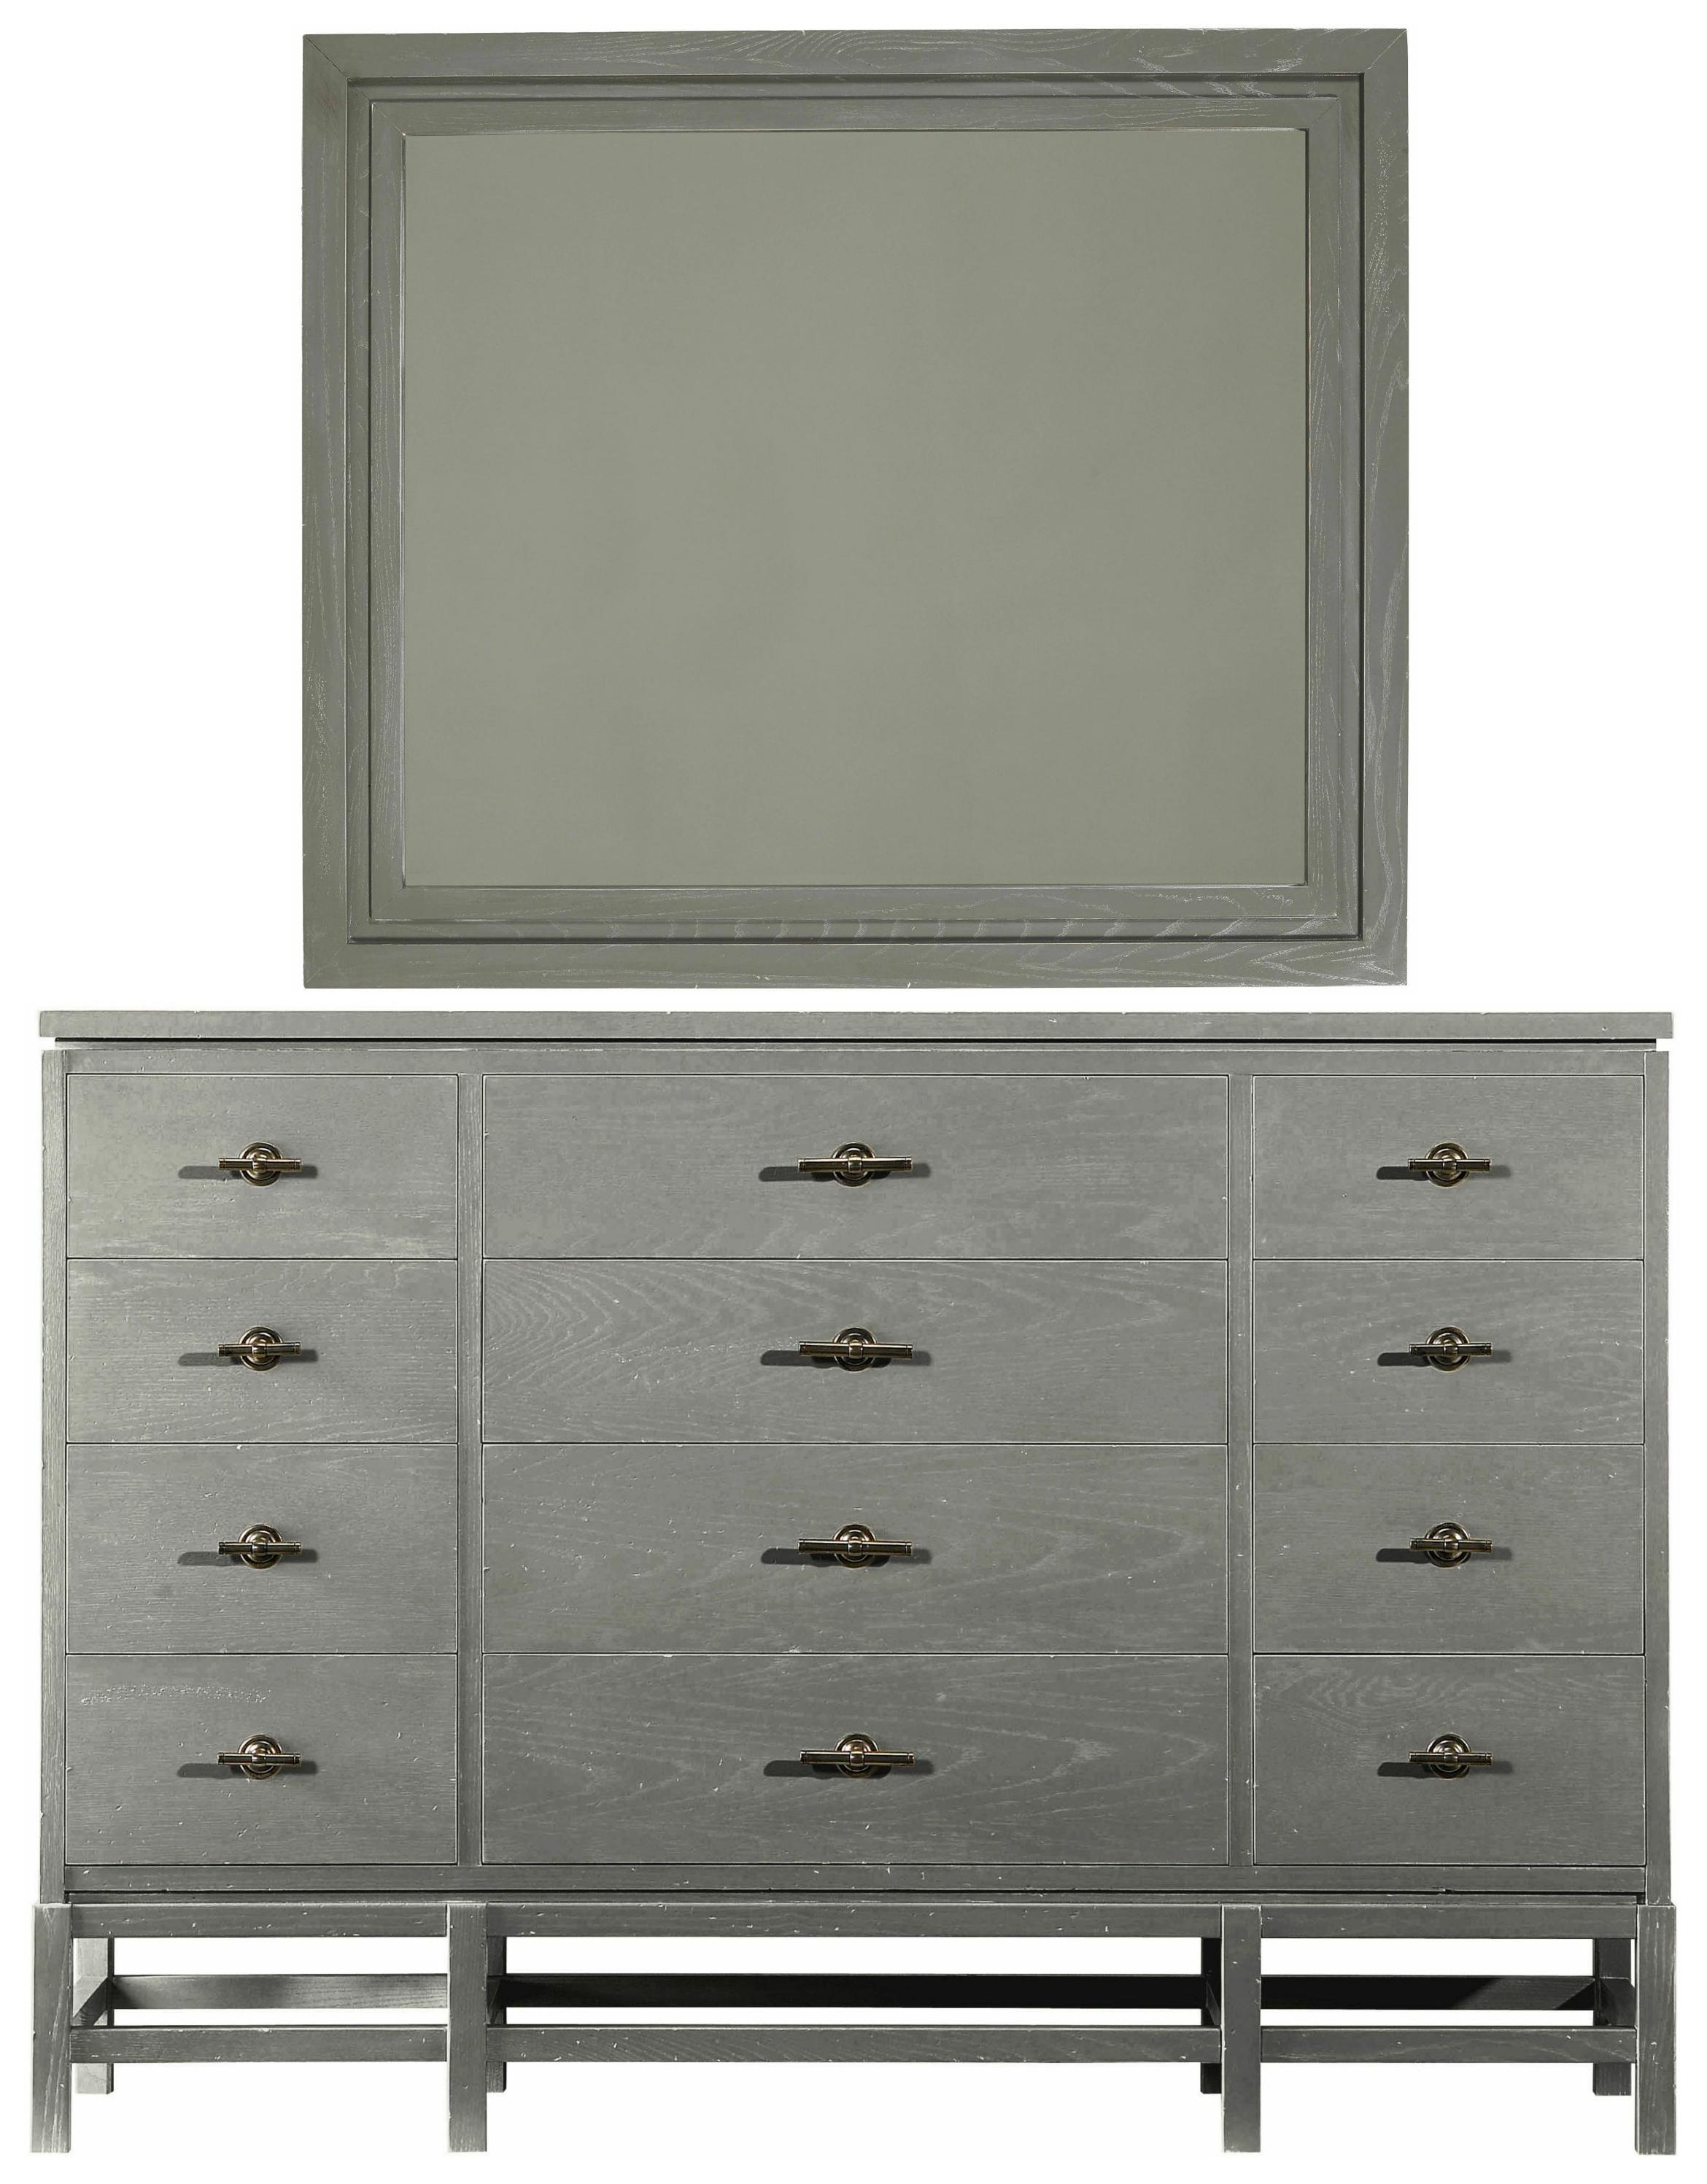 Stanley Furniture Coastal Living Resort Tranquility Isle Dresser & Day's End Mirror - Item Number: 062-B3-06+31